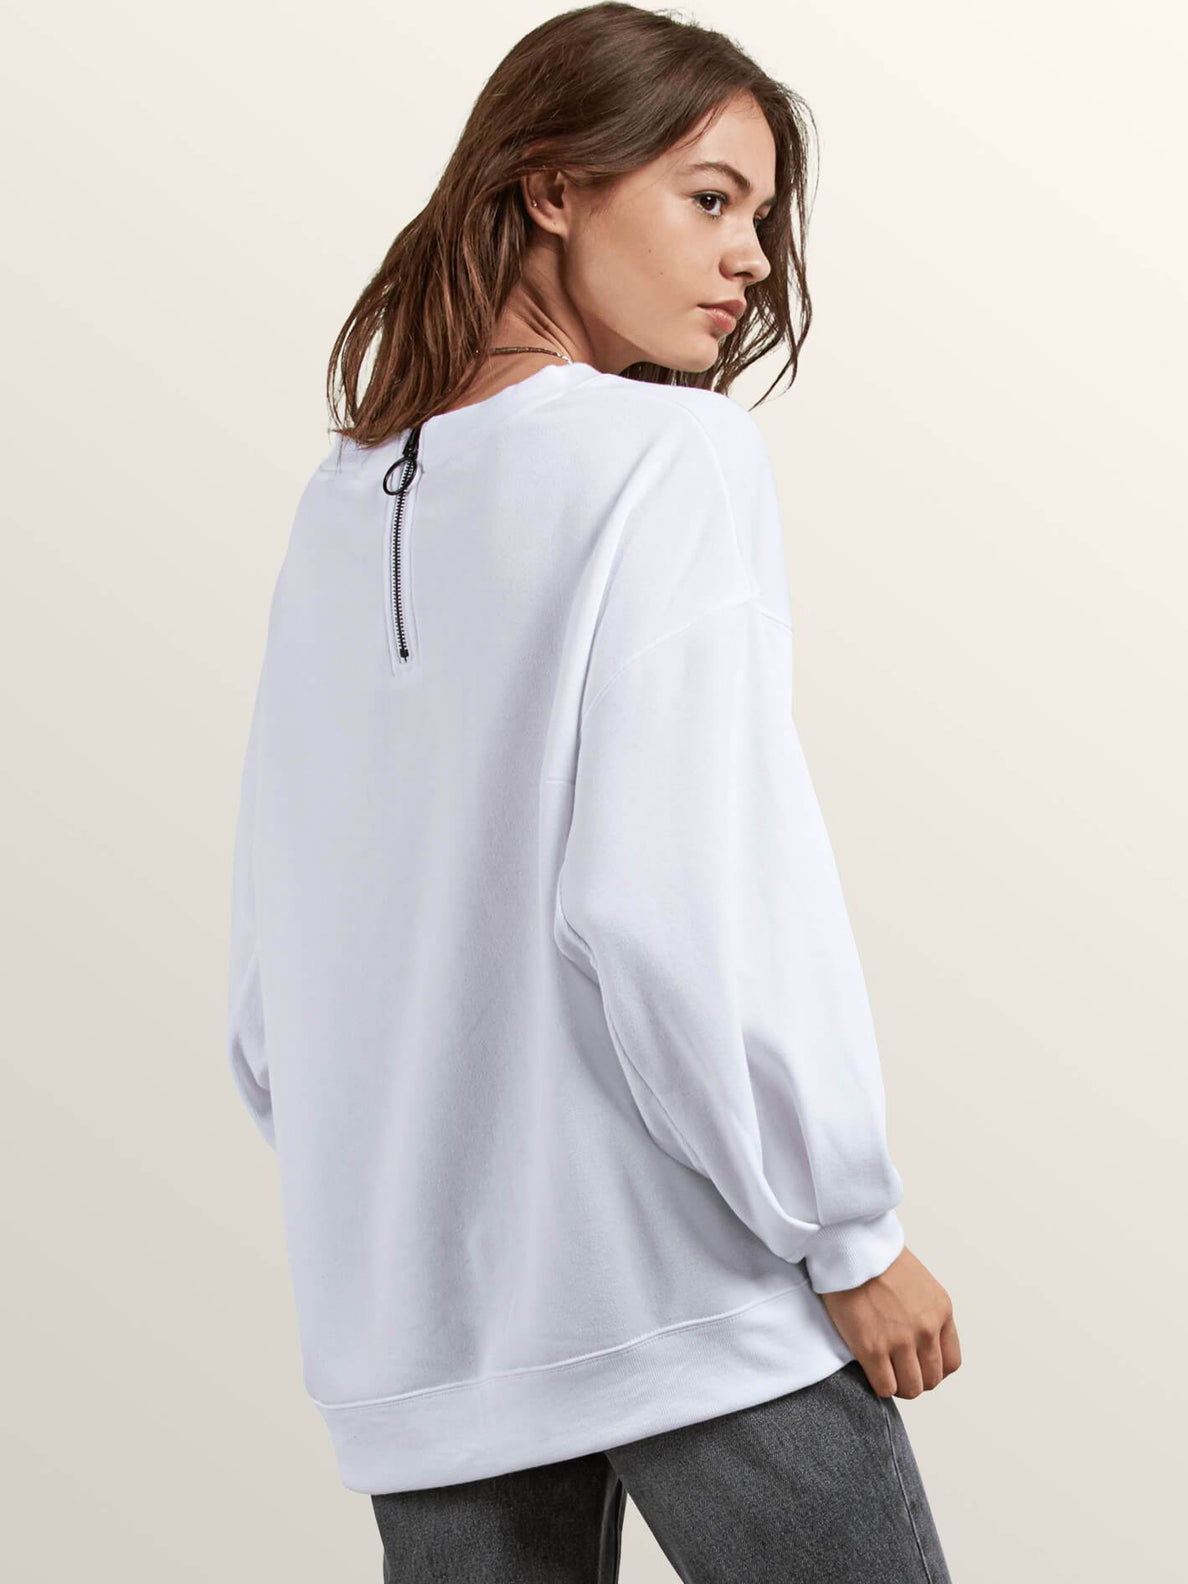 Darting Traffic Crew Sweatshirt In White, Back View